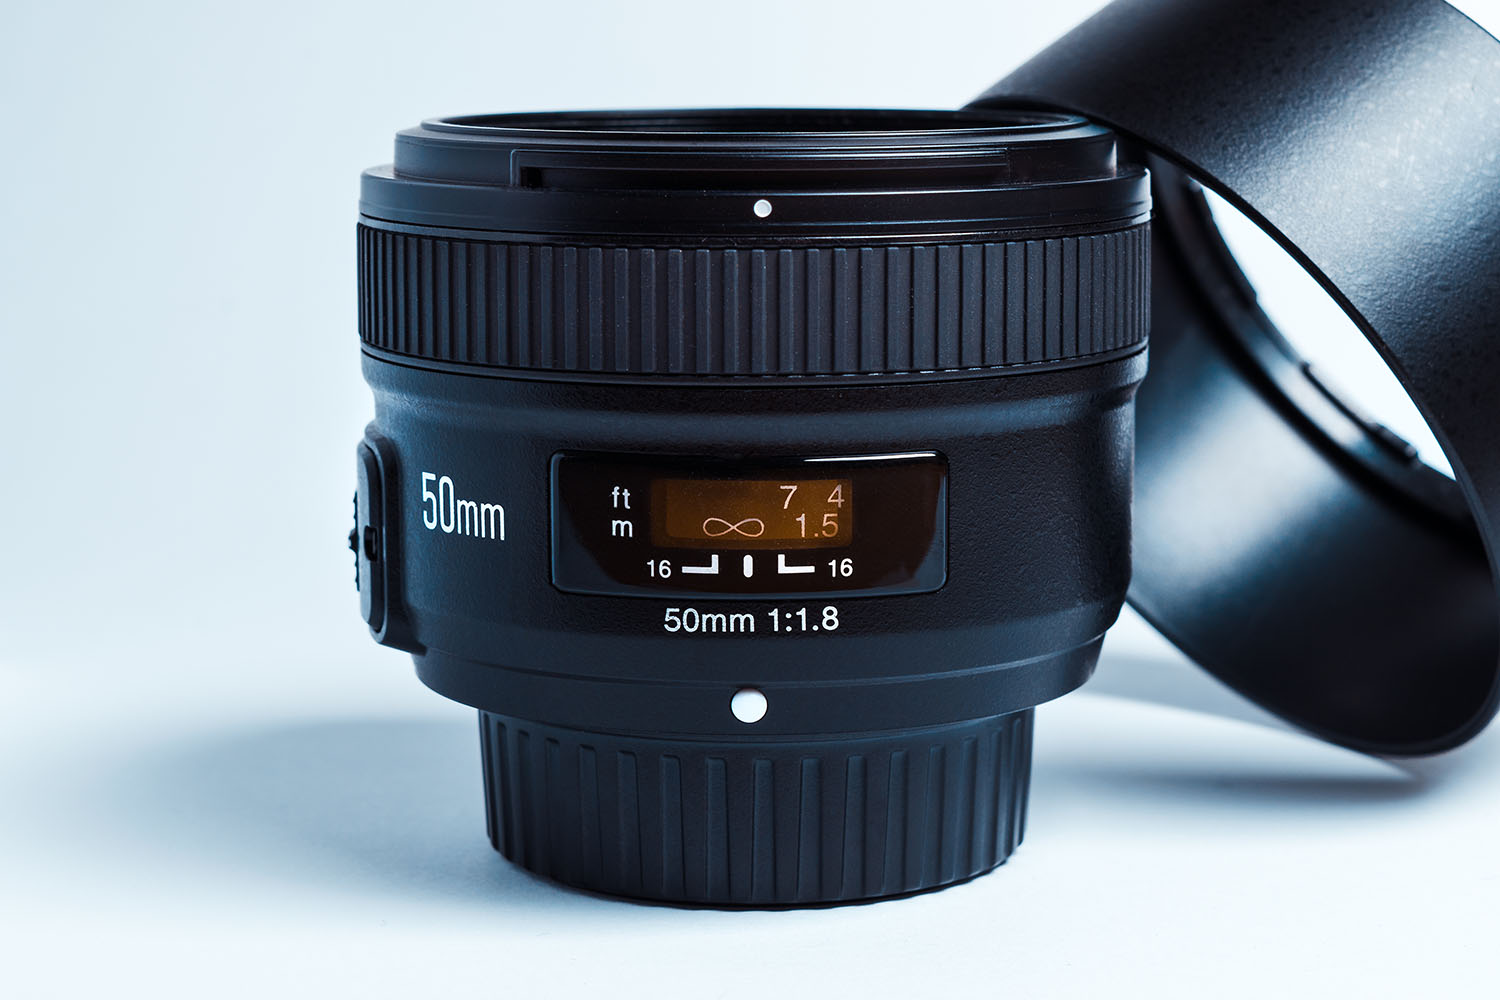 50mm lens on a white background